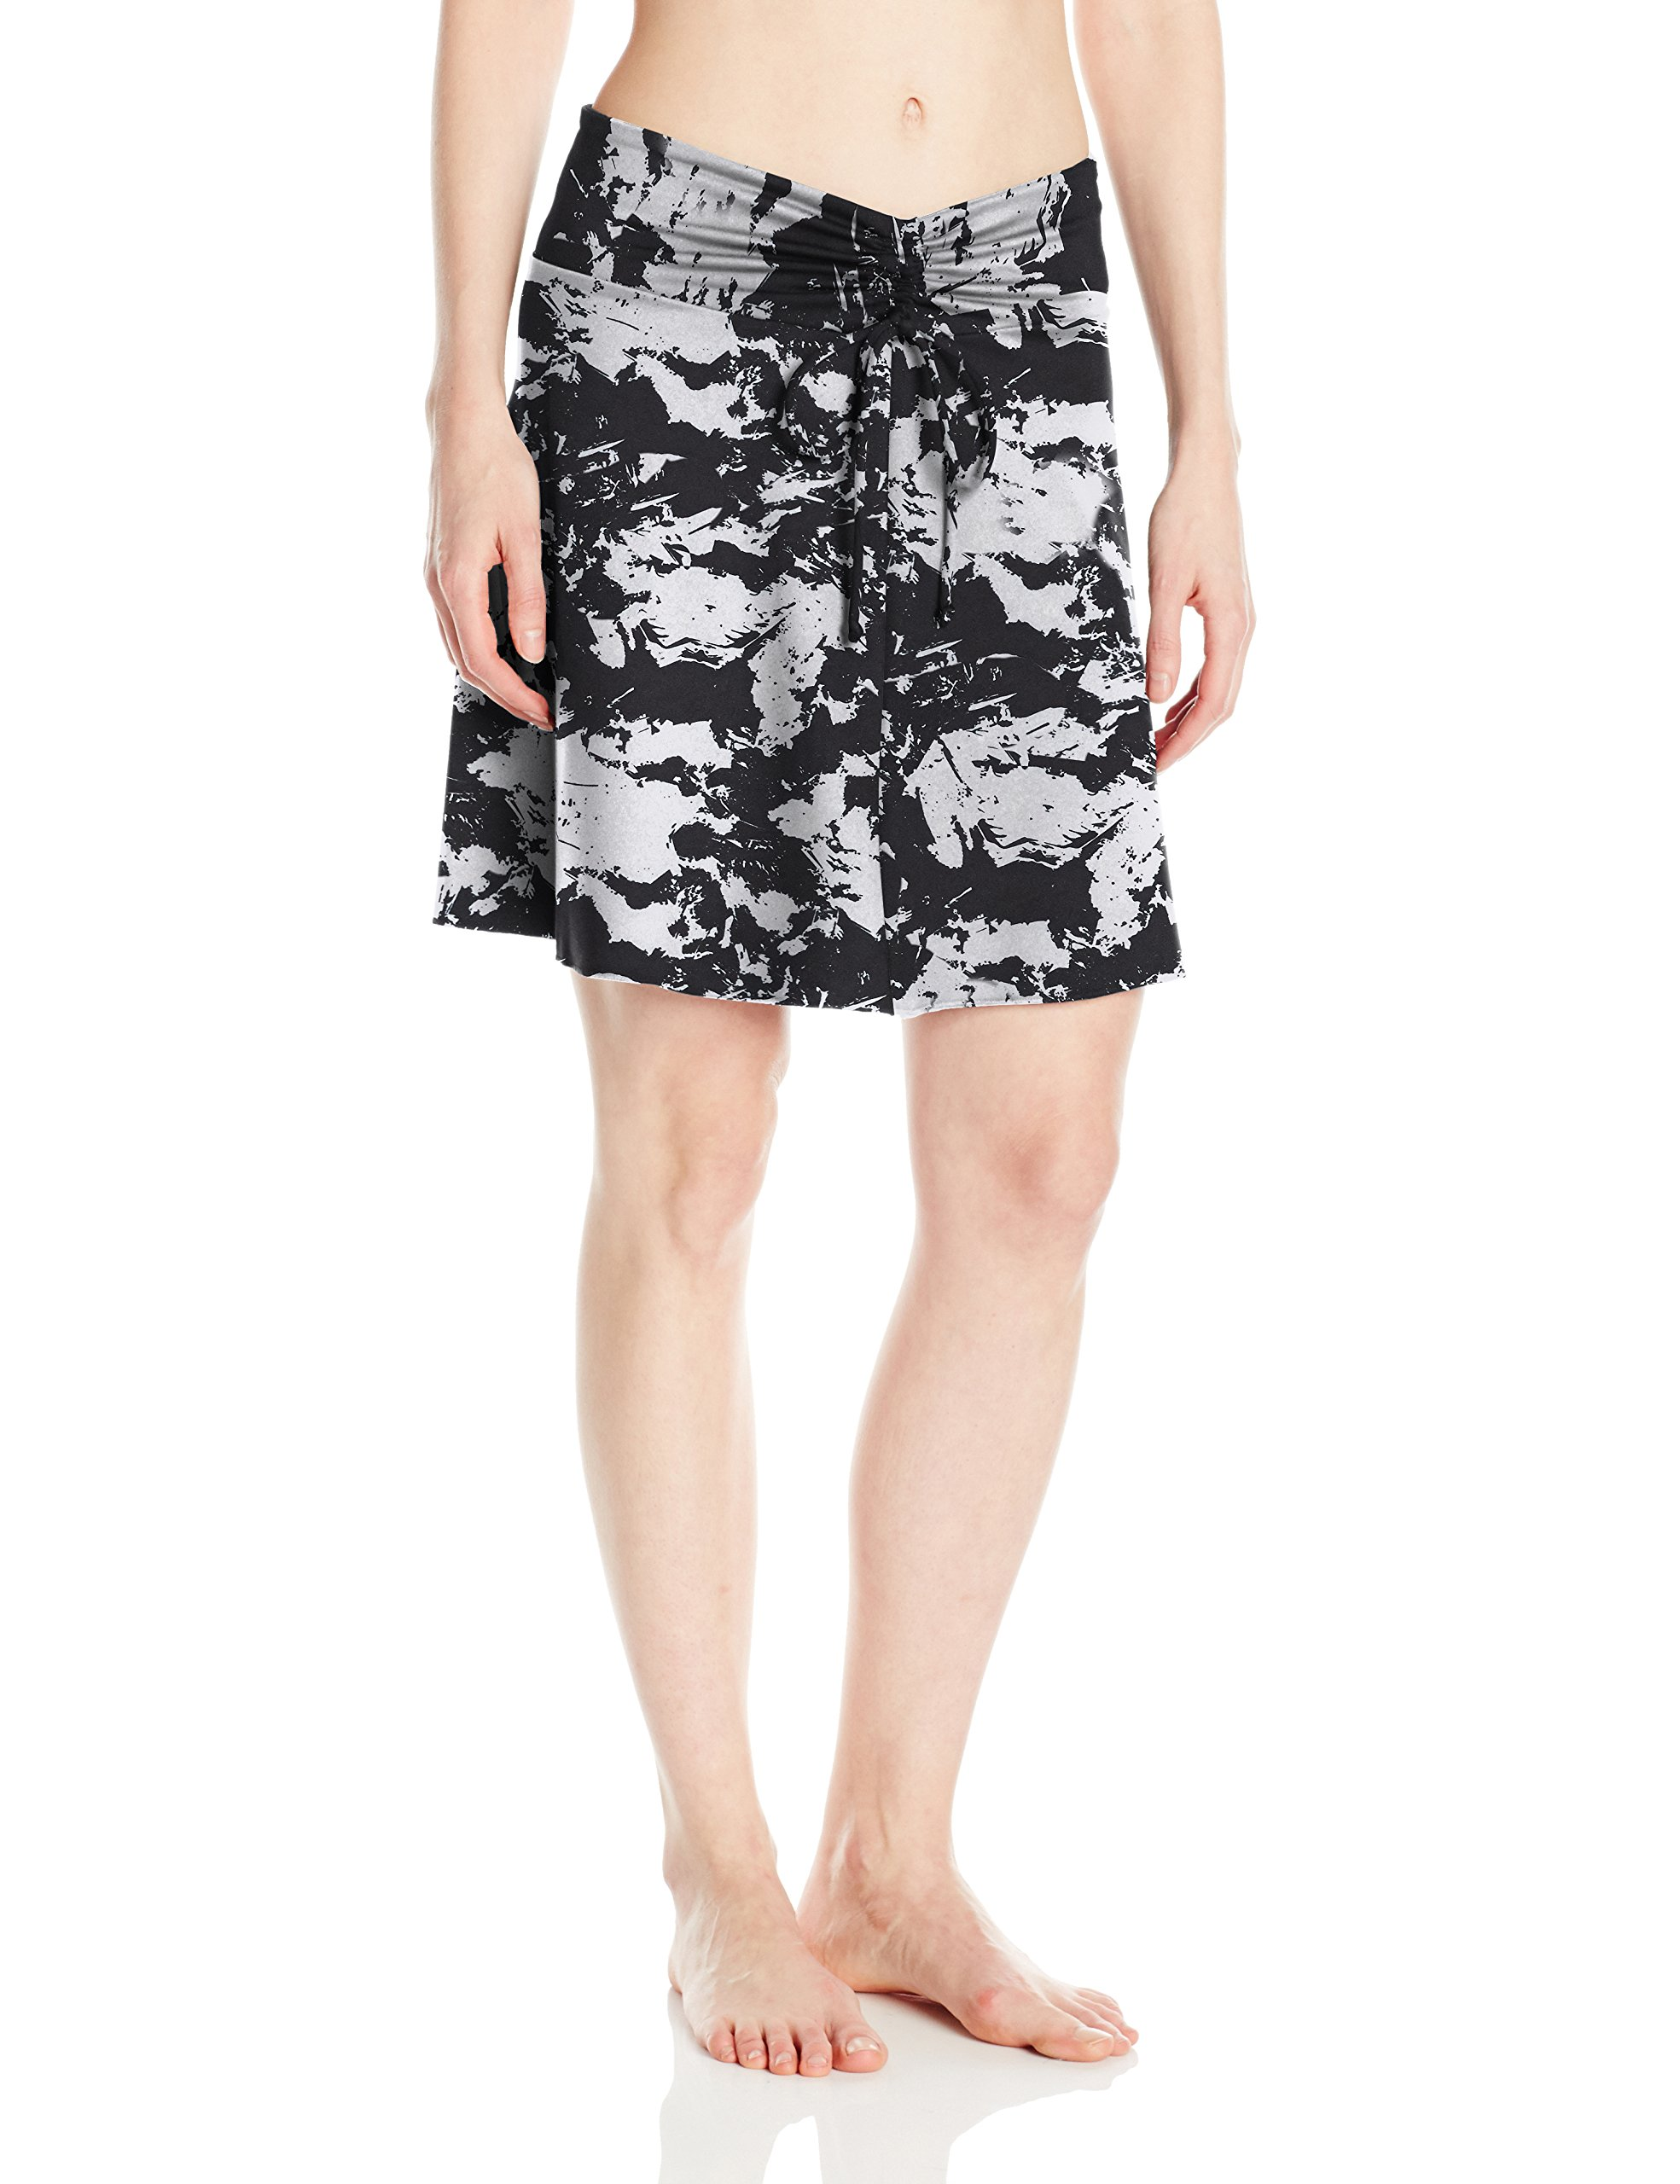 Soybu Women's Serendipity Skirt, Large, Shattered by Soybu